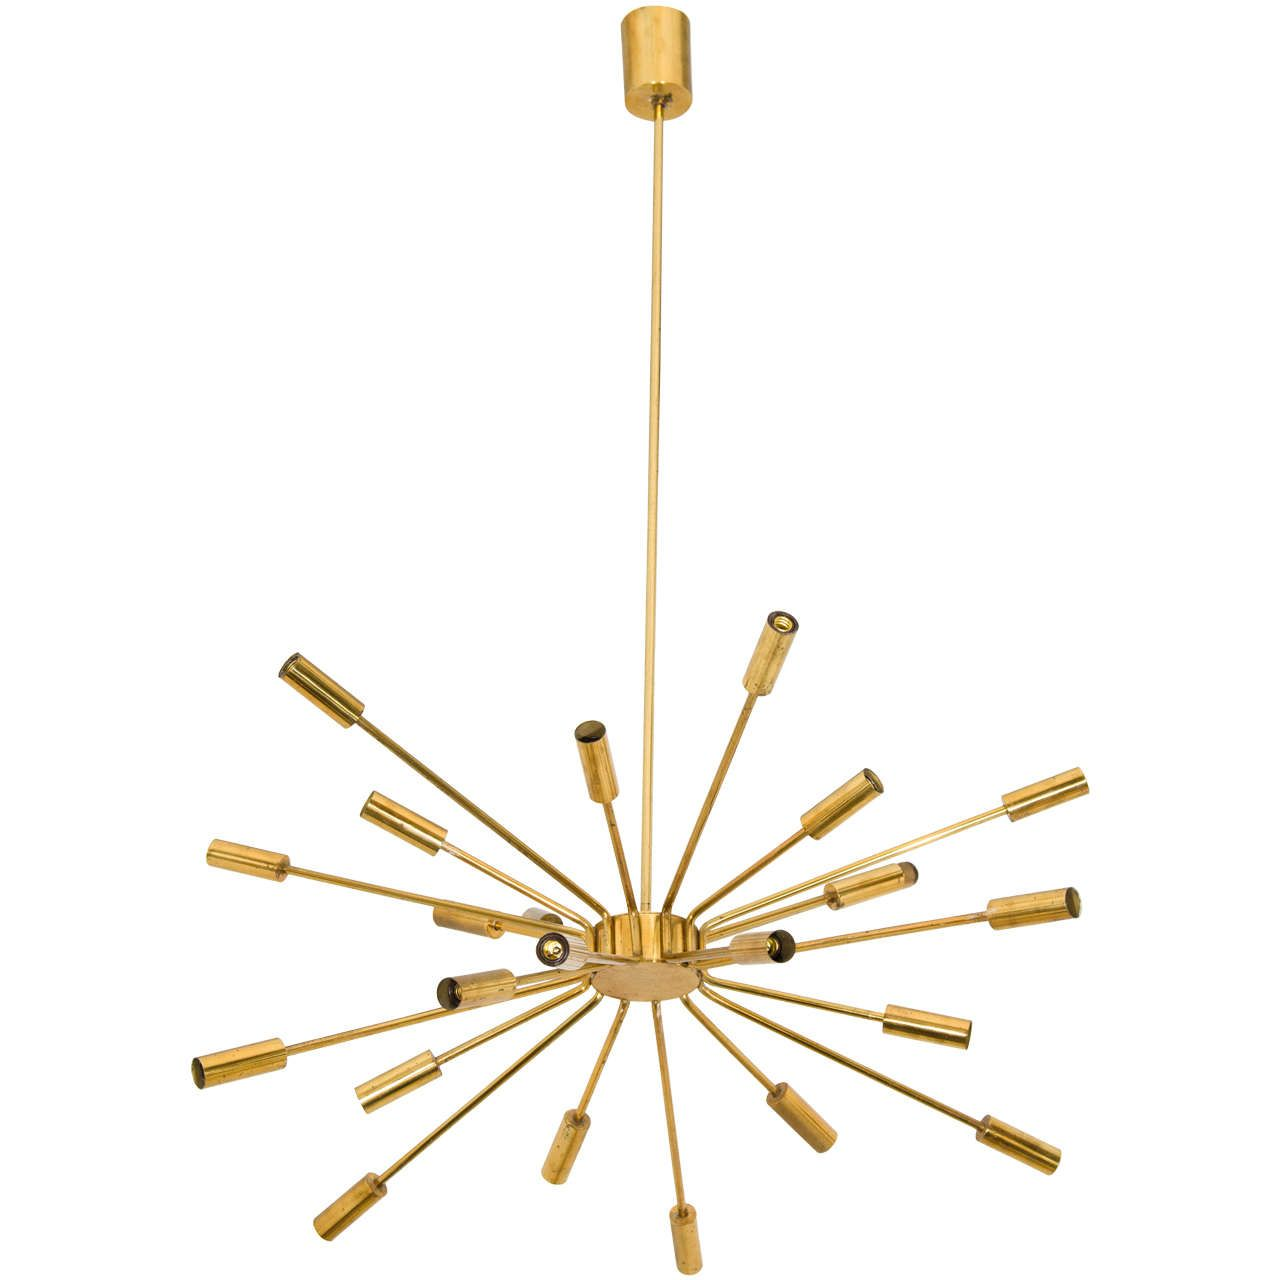 Gino Sarfatti Model 2003 Brass Sputnik Chandelier For Arteluce From A Unique Collection Of Antique And Modern Chandeliers Pendants At